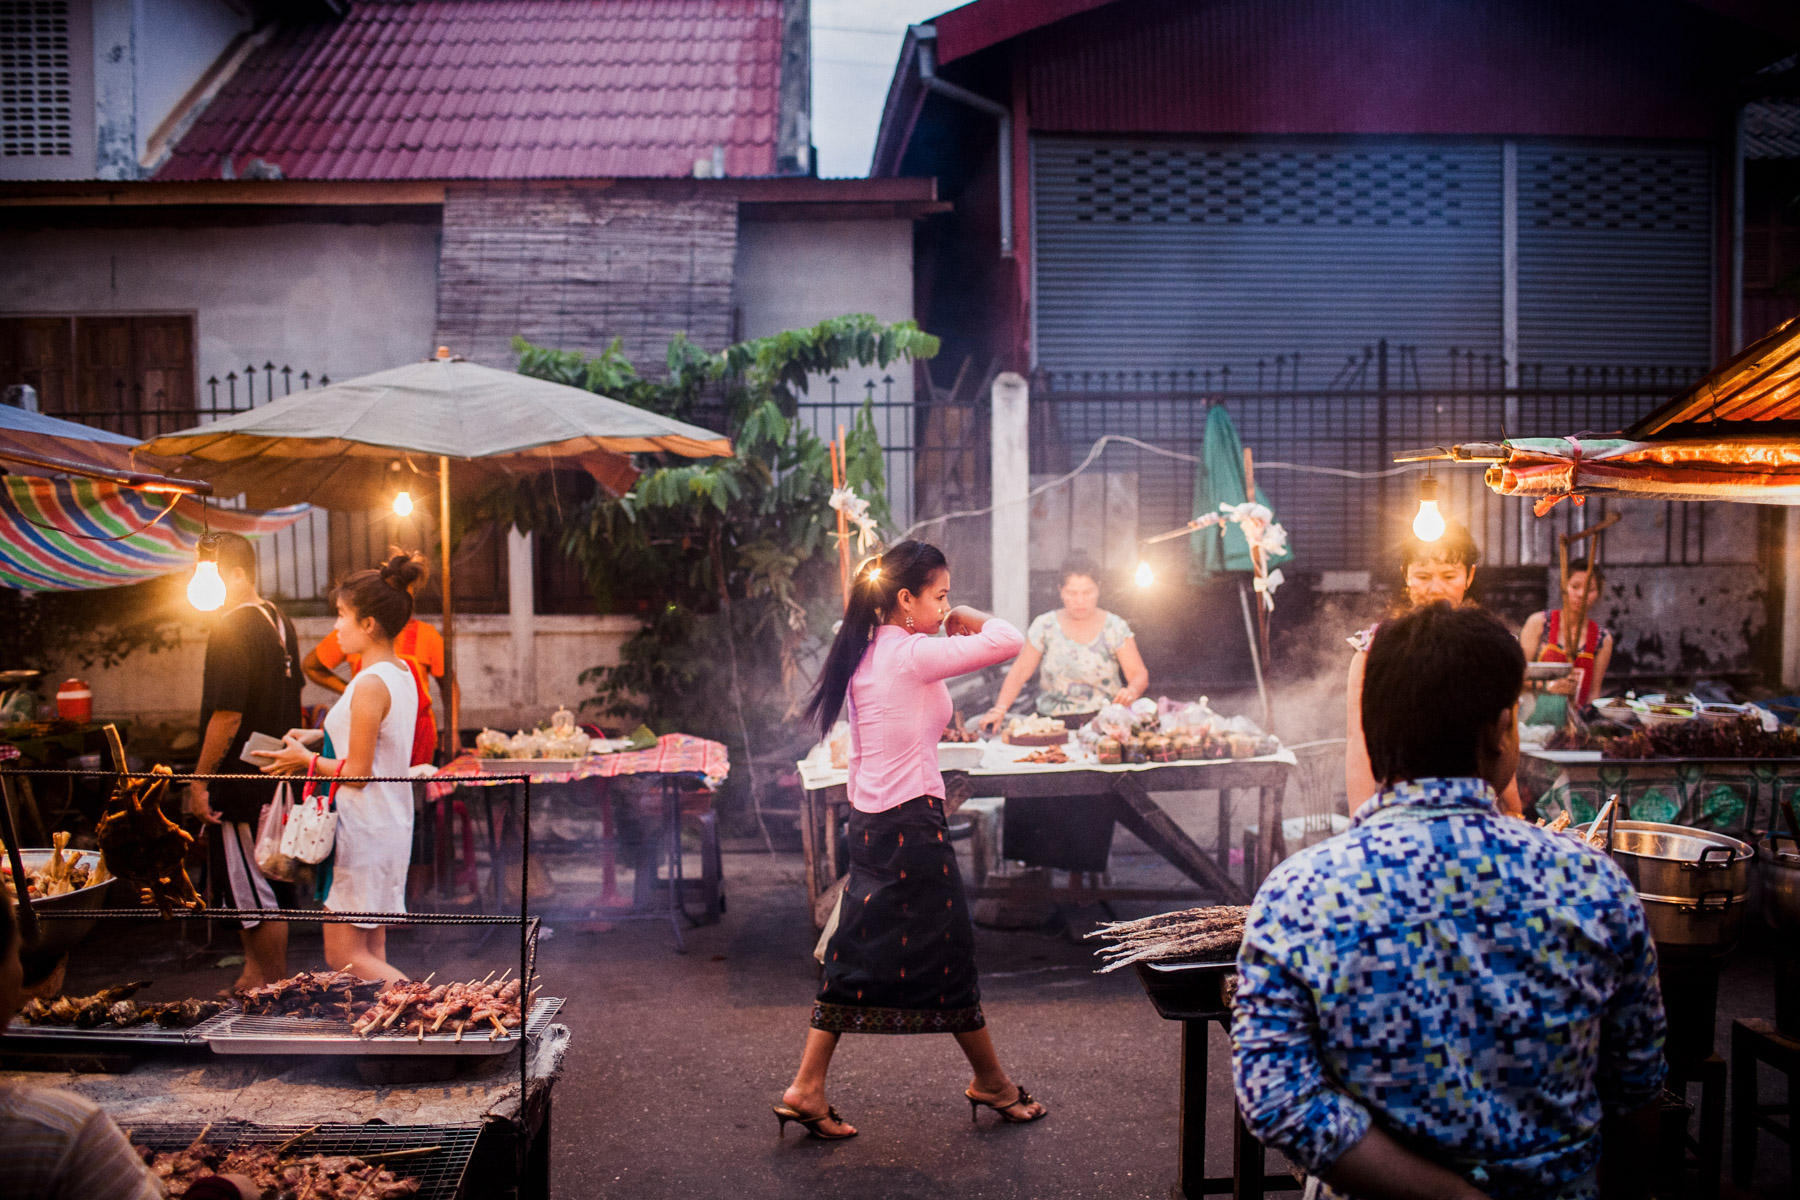 A woman walks through the Ban Anou night market in Vientiane, Laos.